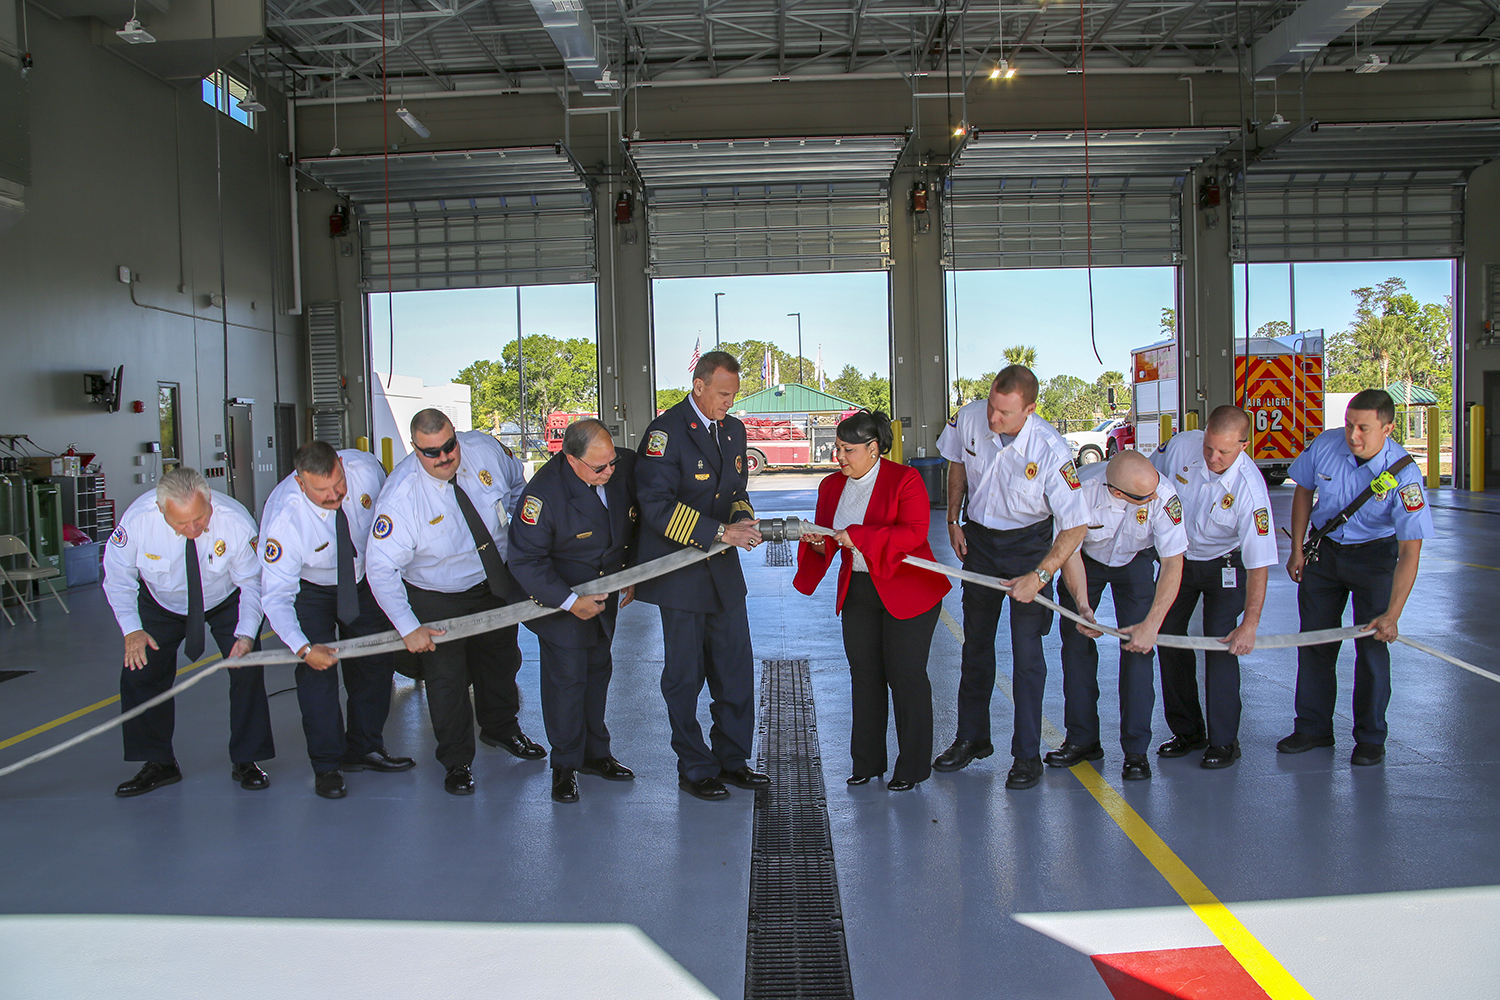 Wharton-Smith Celebrates Grand Opening of Osceola County's Fire Station 62 & 65th Infantry Veterans Park